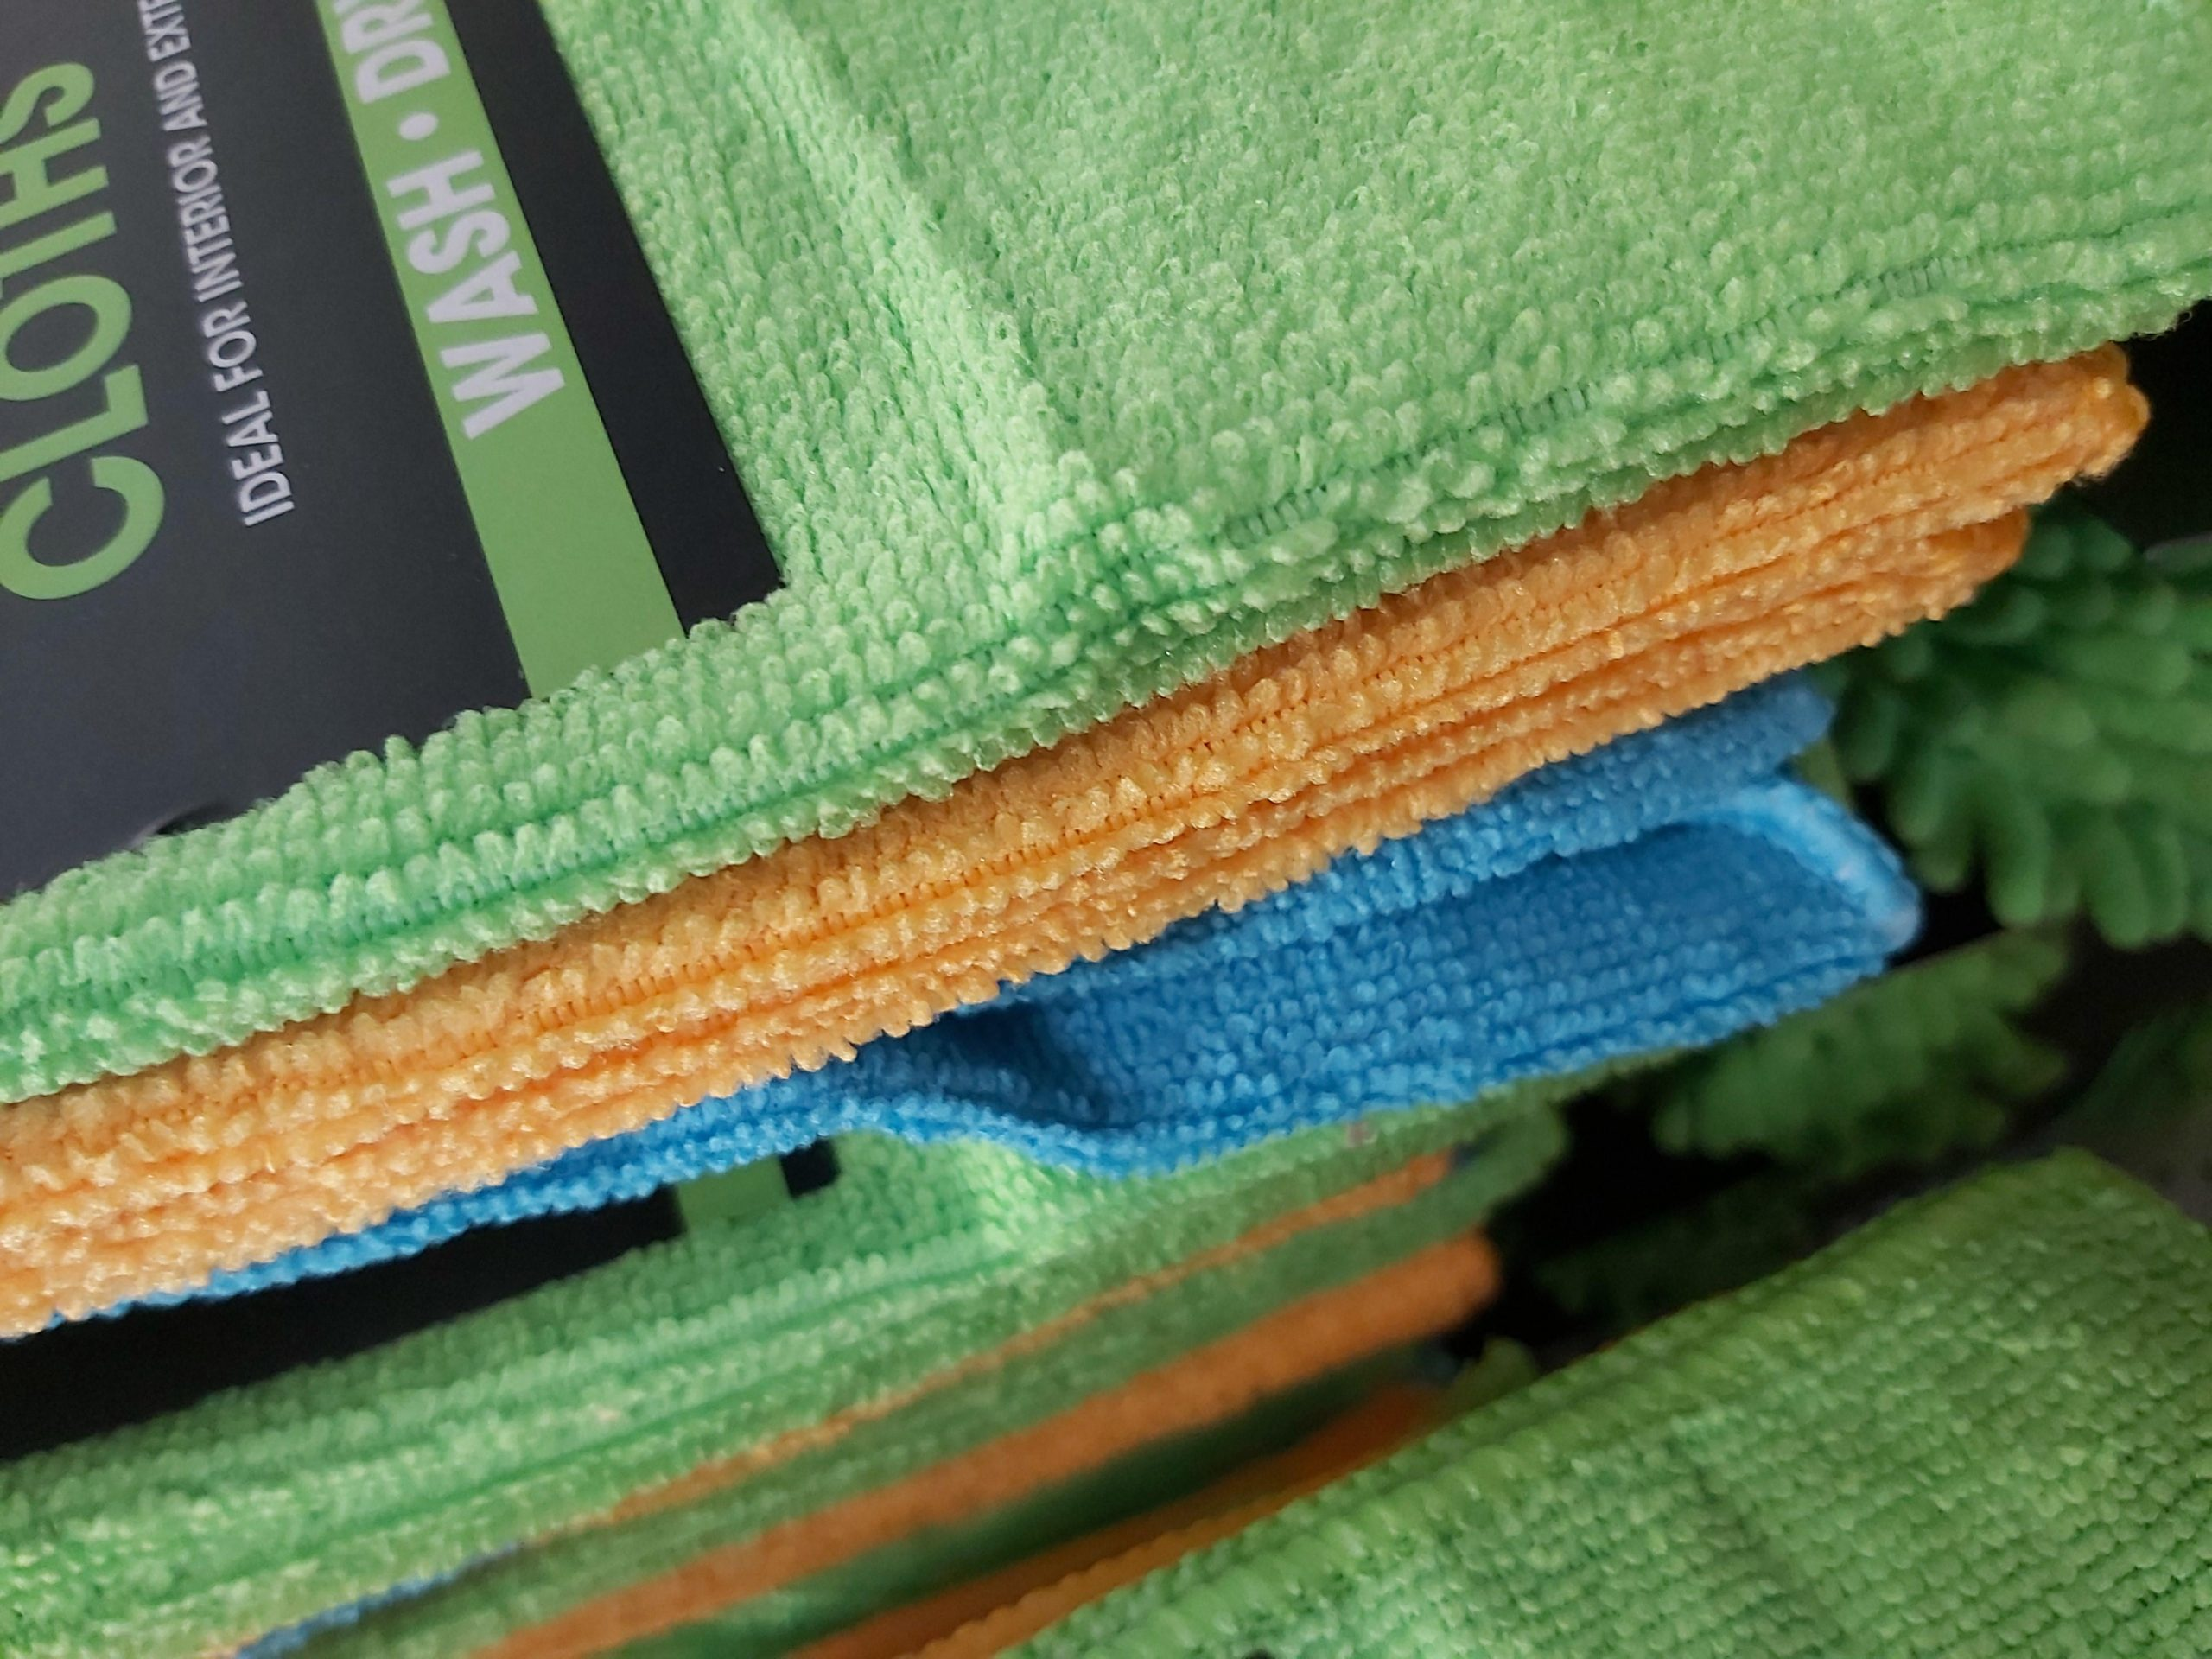 Washing Microfiber Towels After Waxing has to be done correctly to protect the microfibers